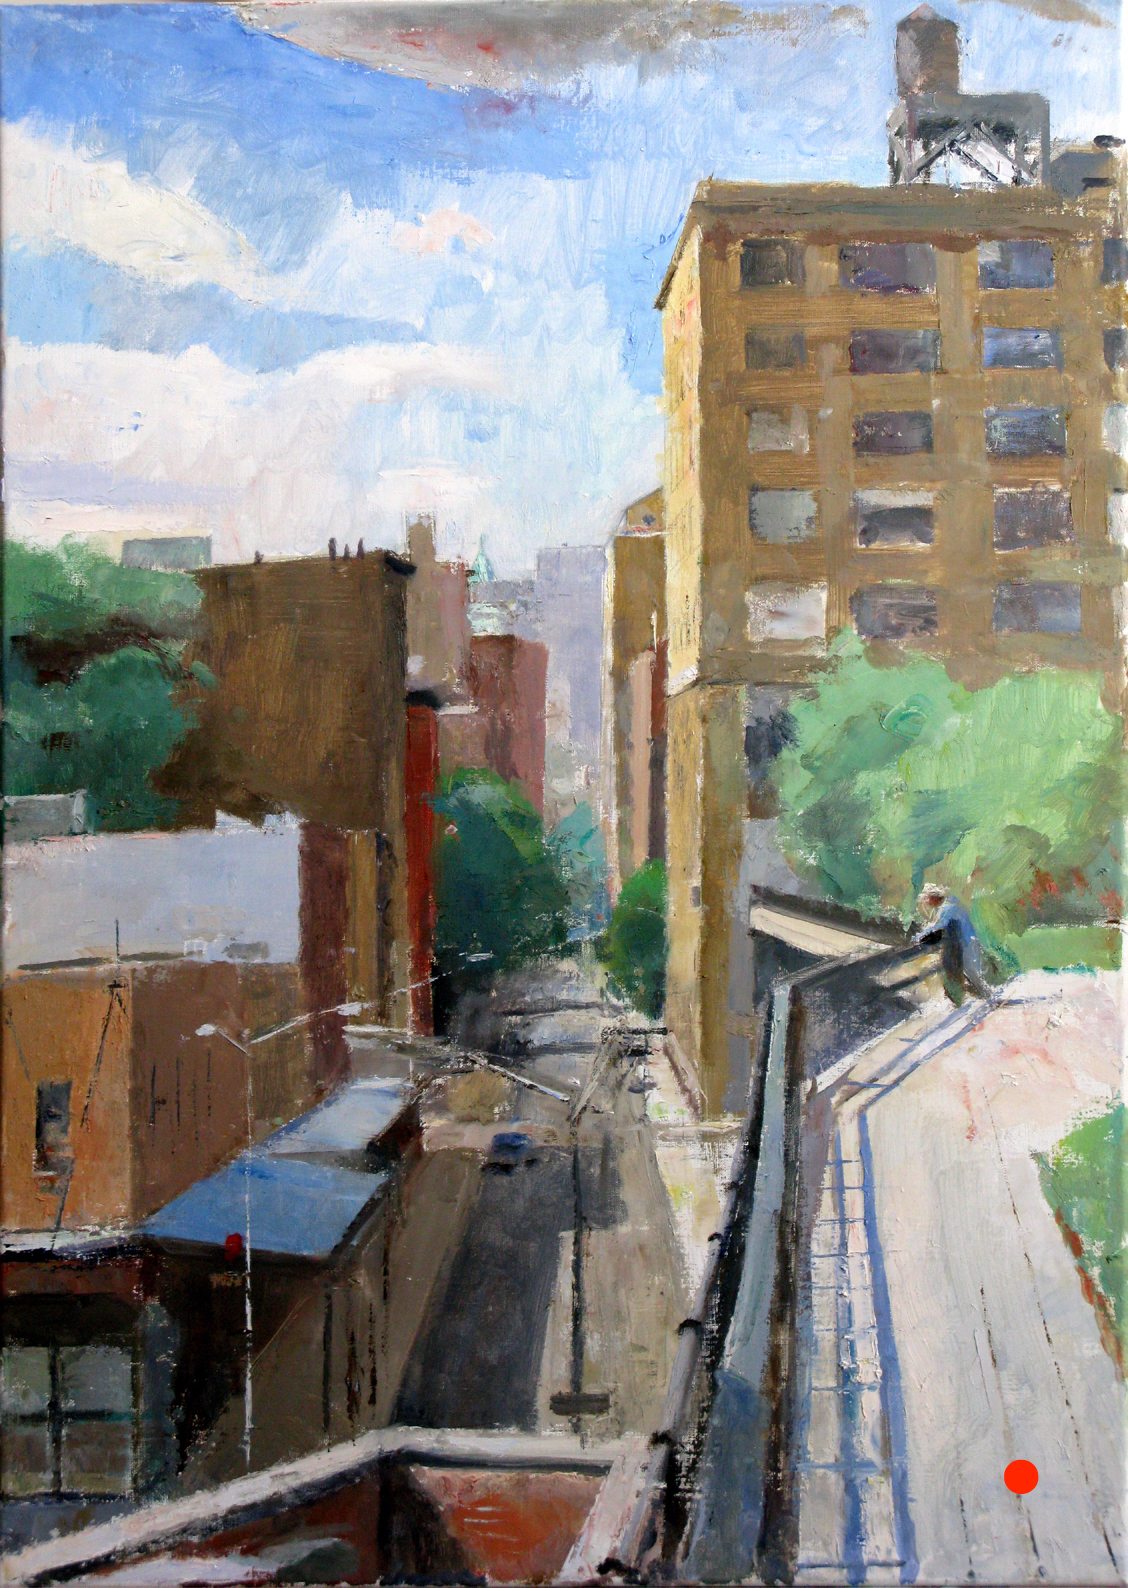 Washington Street,  South View, 27 x 19 inches, oil on linen